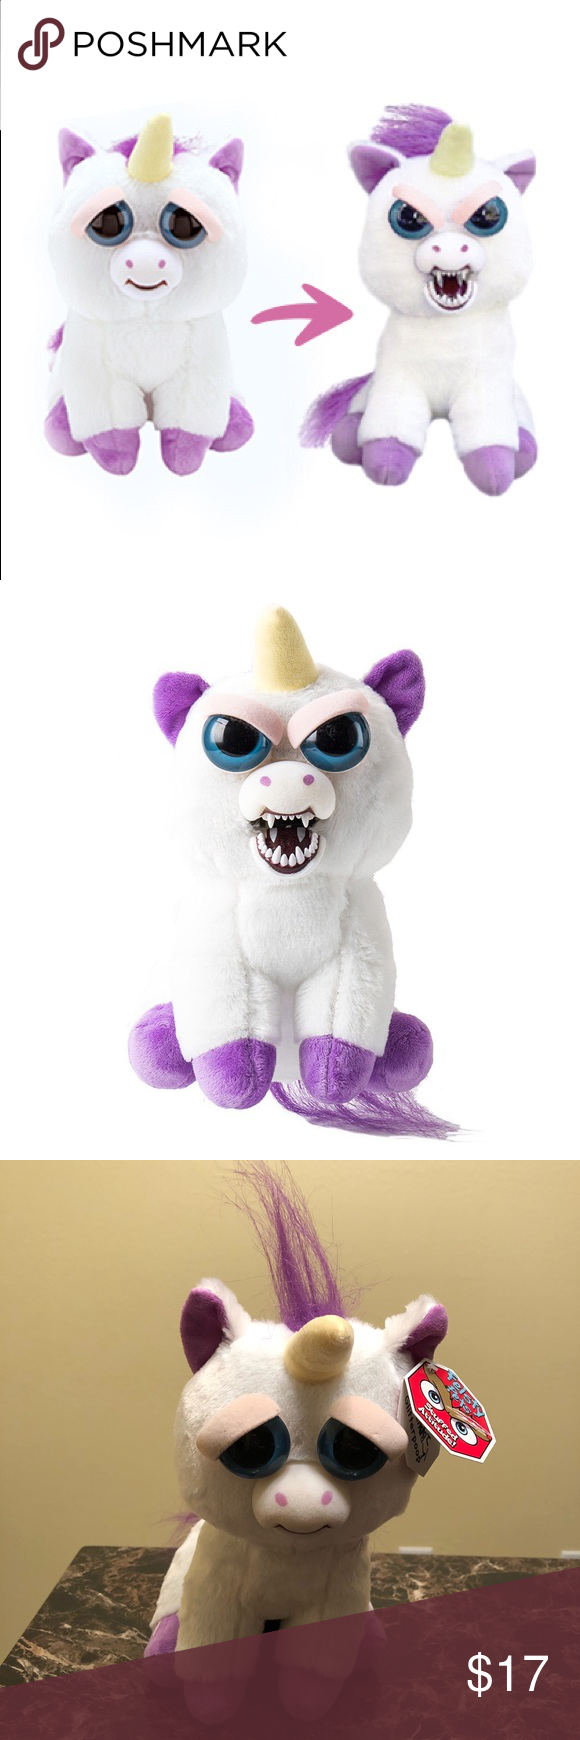 Feisty Pets Glenda Glitterpoop Unicorn Plush Nwt Unicorn Plush Cute Gifts